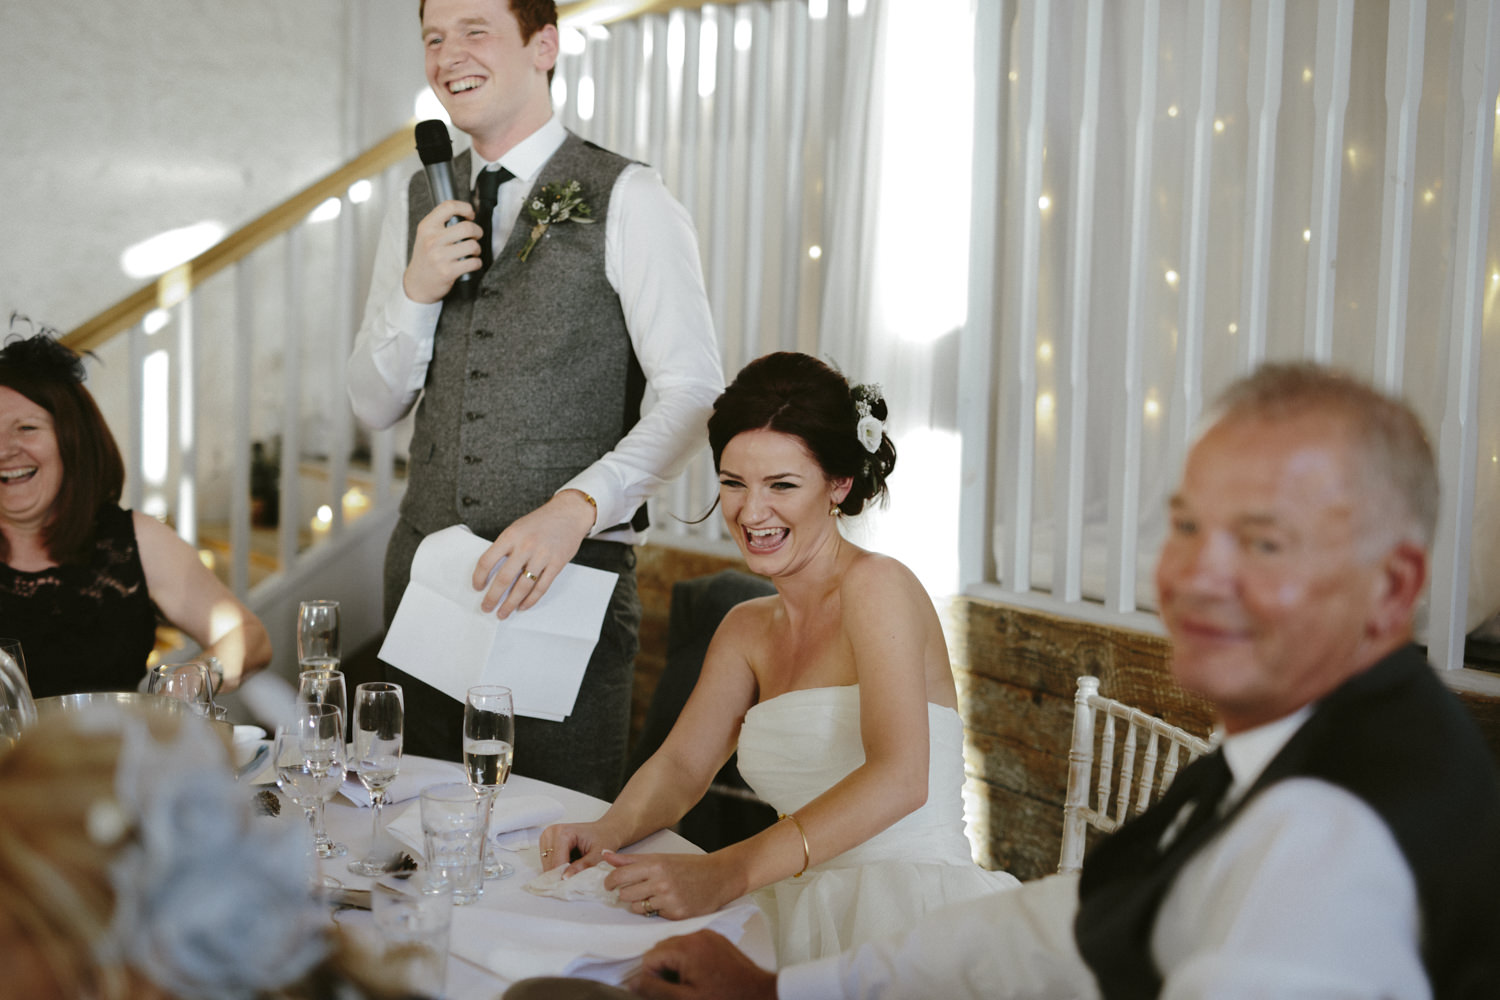 Askham-Hall-Wedding-Websize-414.jpg